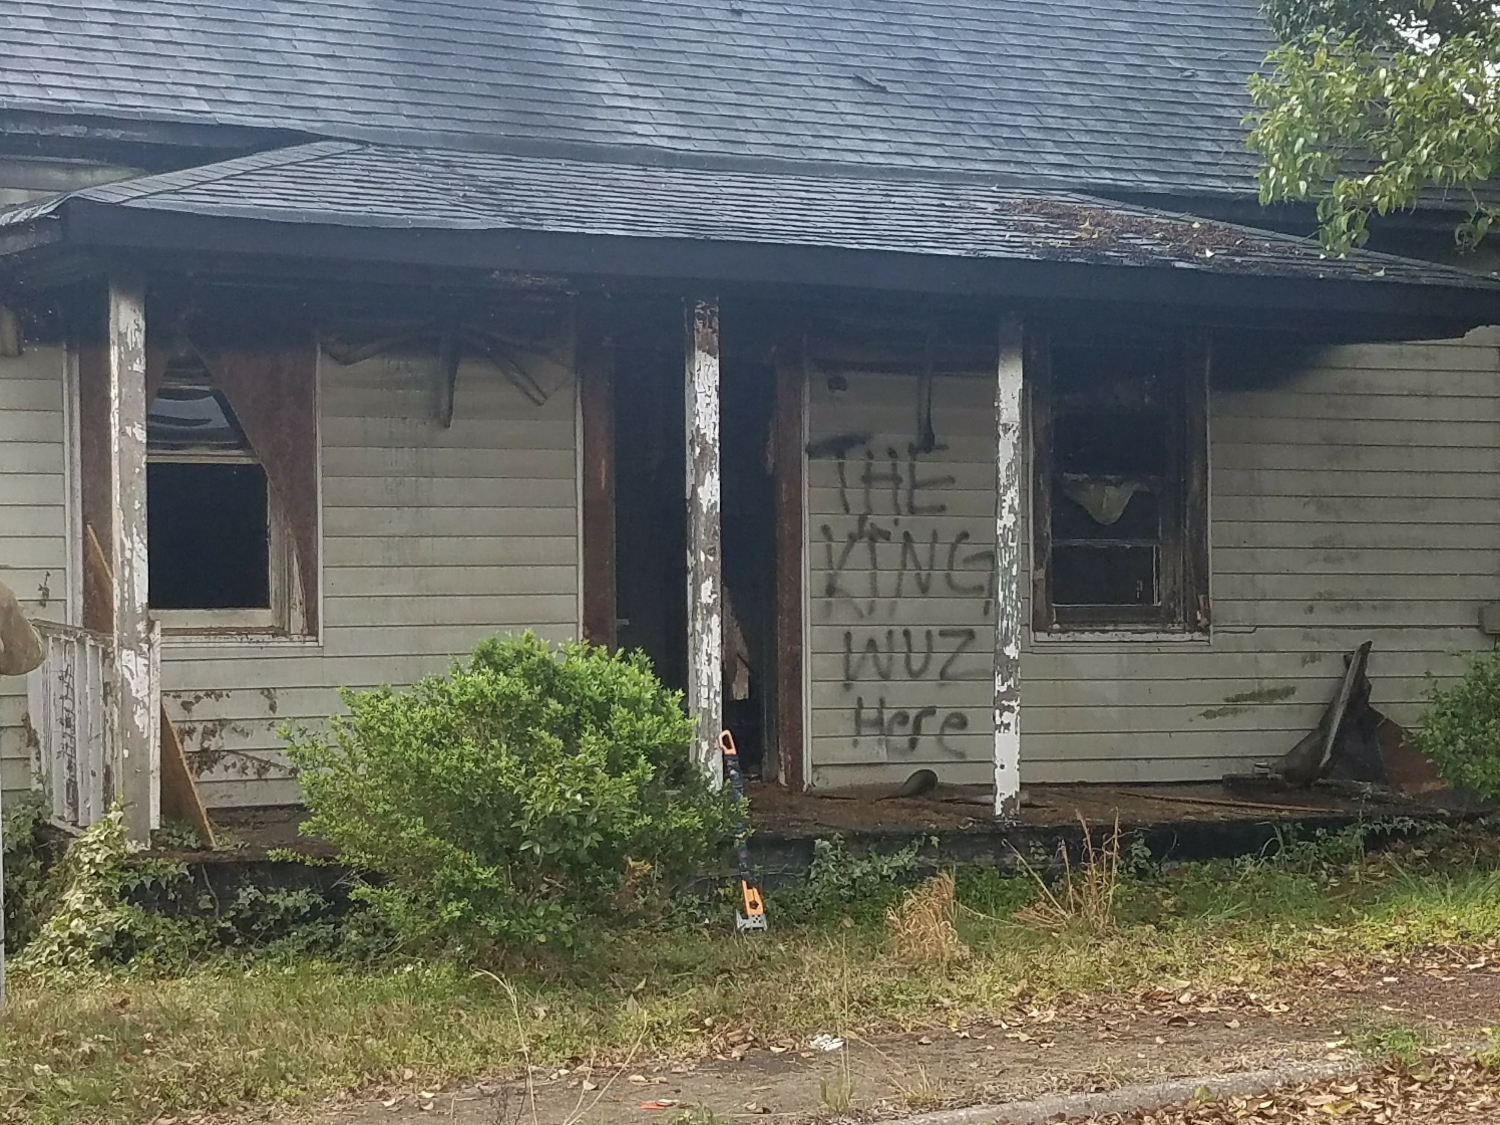 I've covered countless house fires during my time as a reporter, but this was was unique because of the graffiti on the front of the building. It was later ruled an arson.